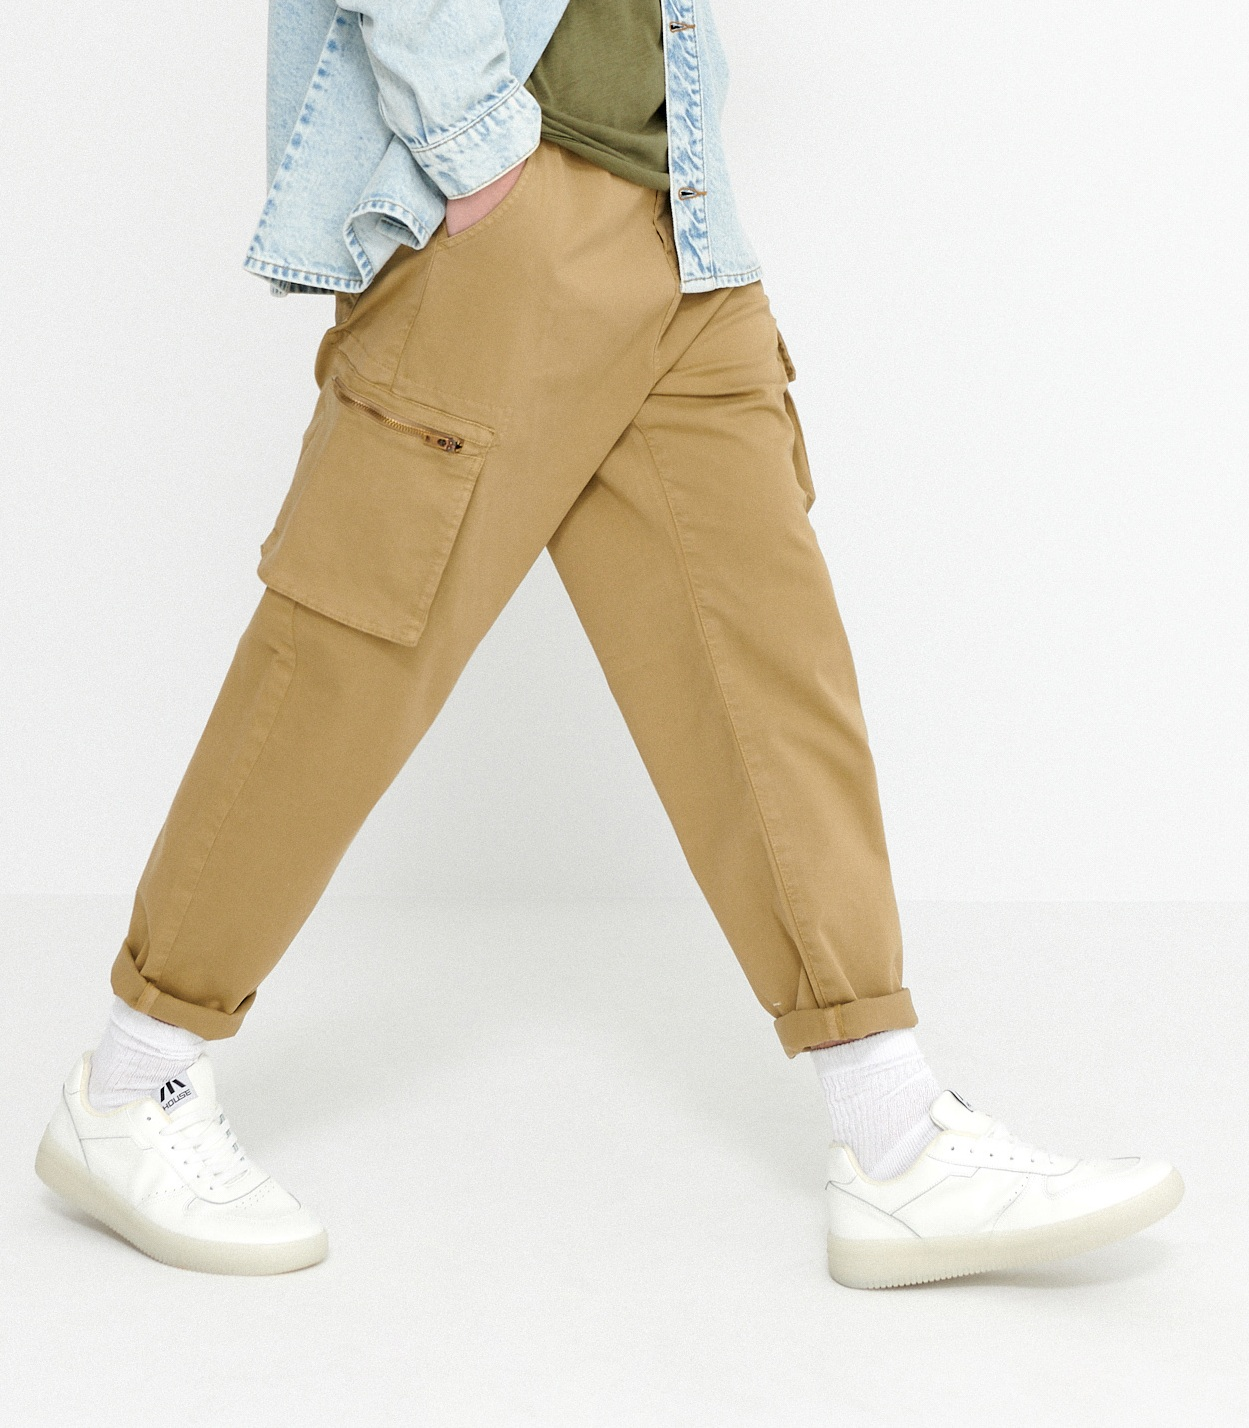 Stretchable Cargo Pant